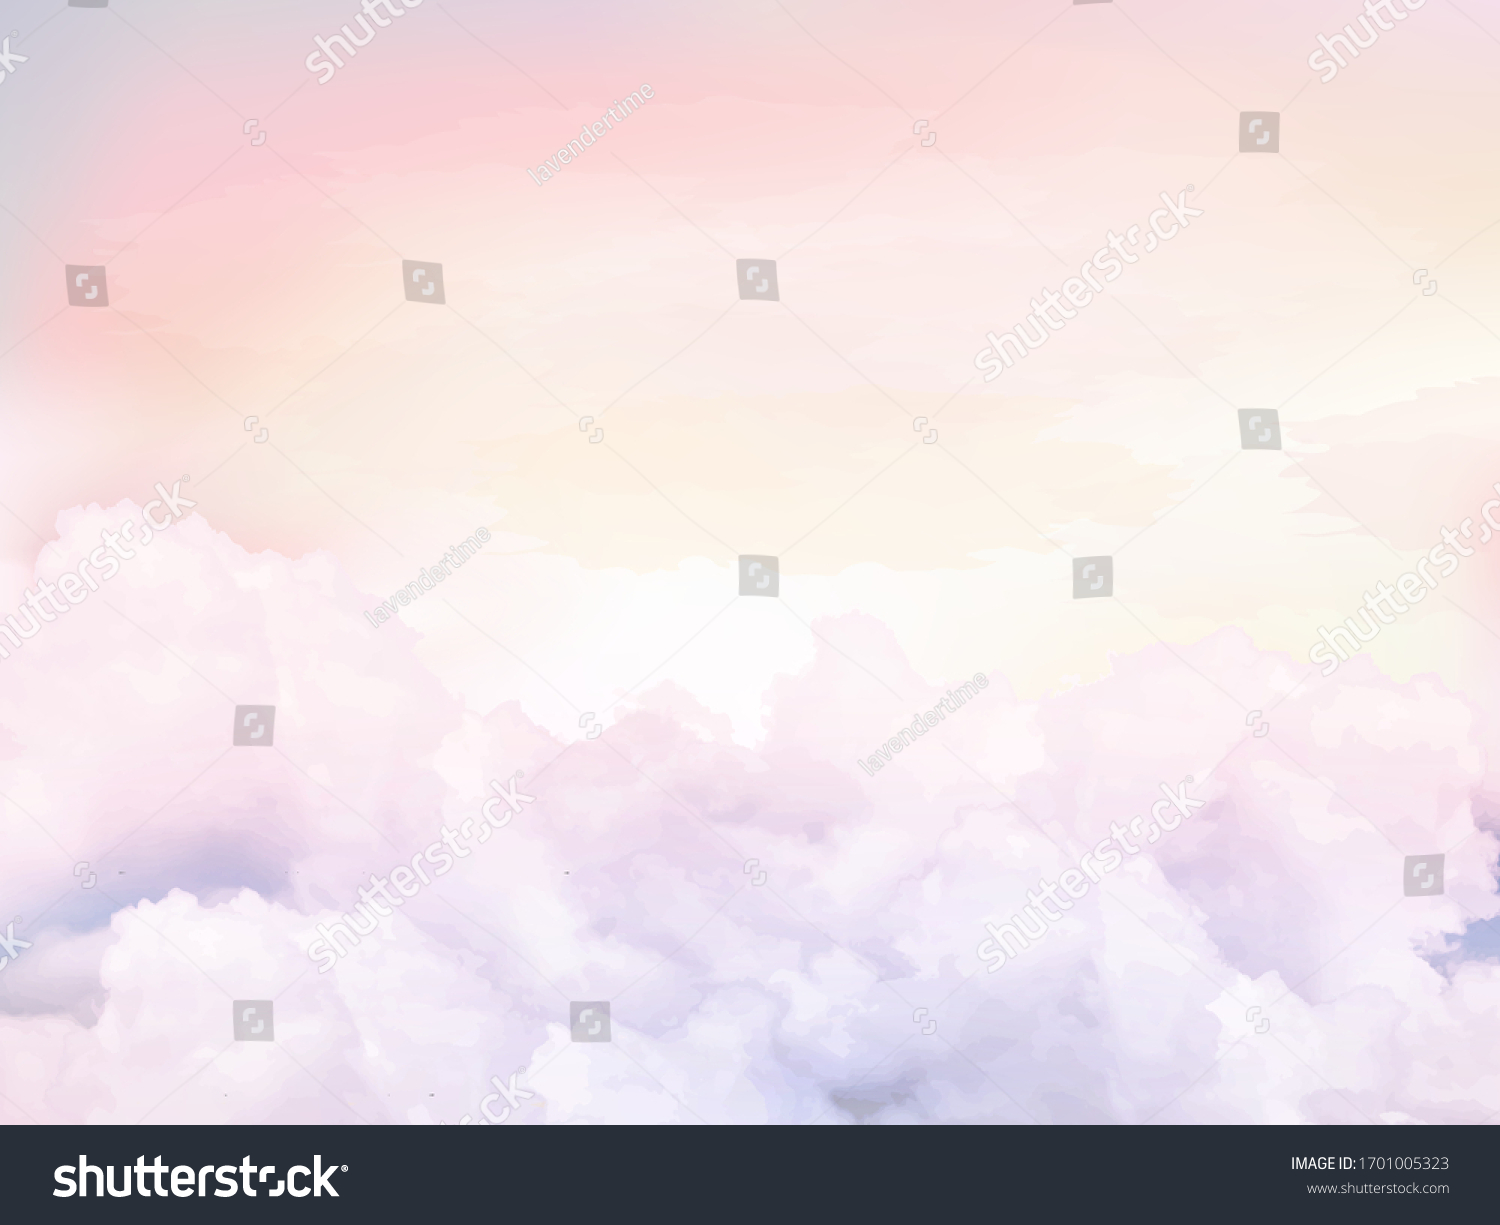 Sugar cotton pink clouds vector design background. Glamour fairytale backdrop. Plane sky view with stars and sunset. Watercolor style texture. Delicate card. Elegant decoration. Fantasy pastel color #1701005323